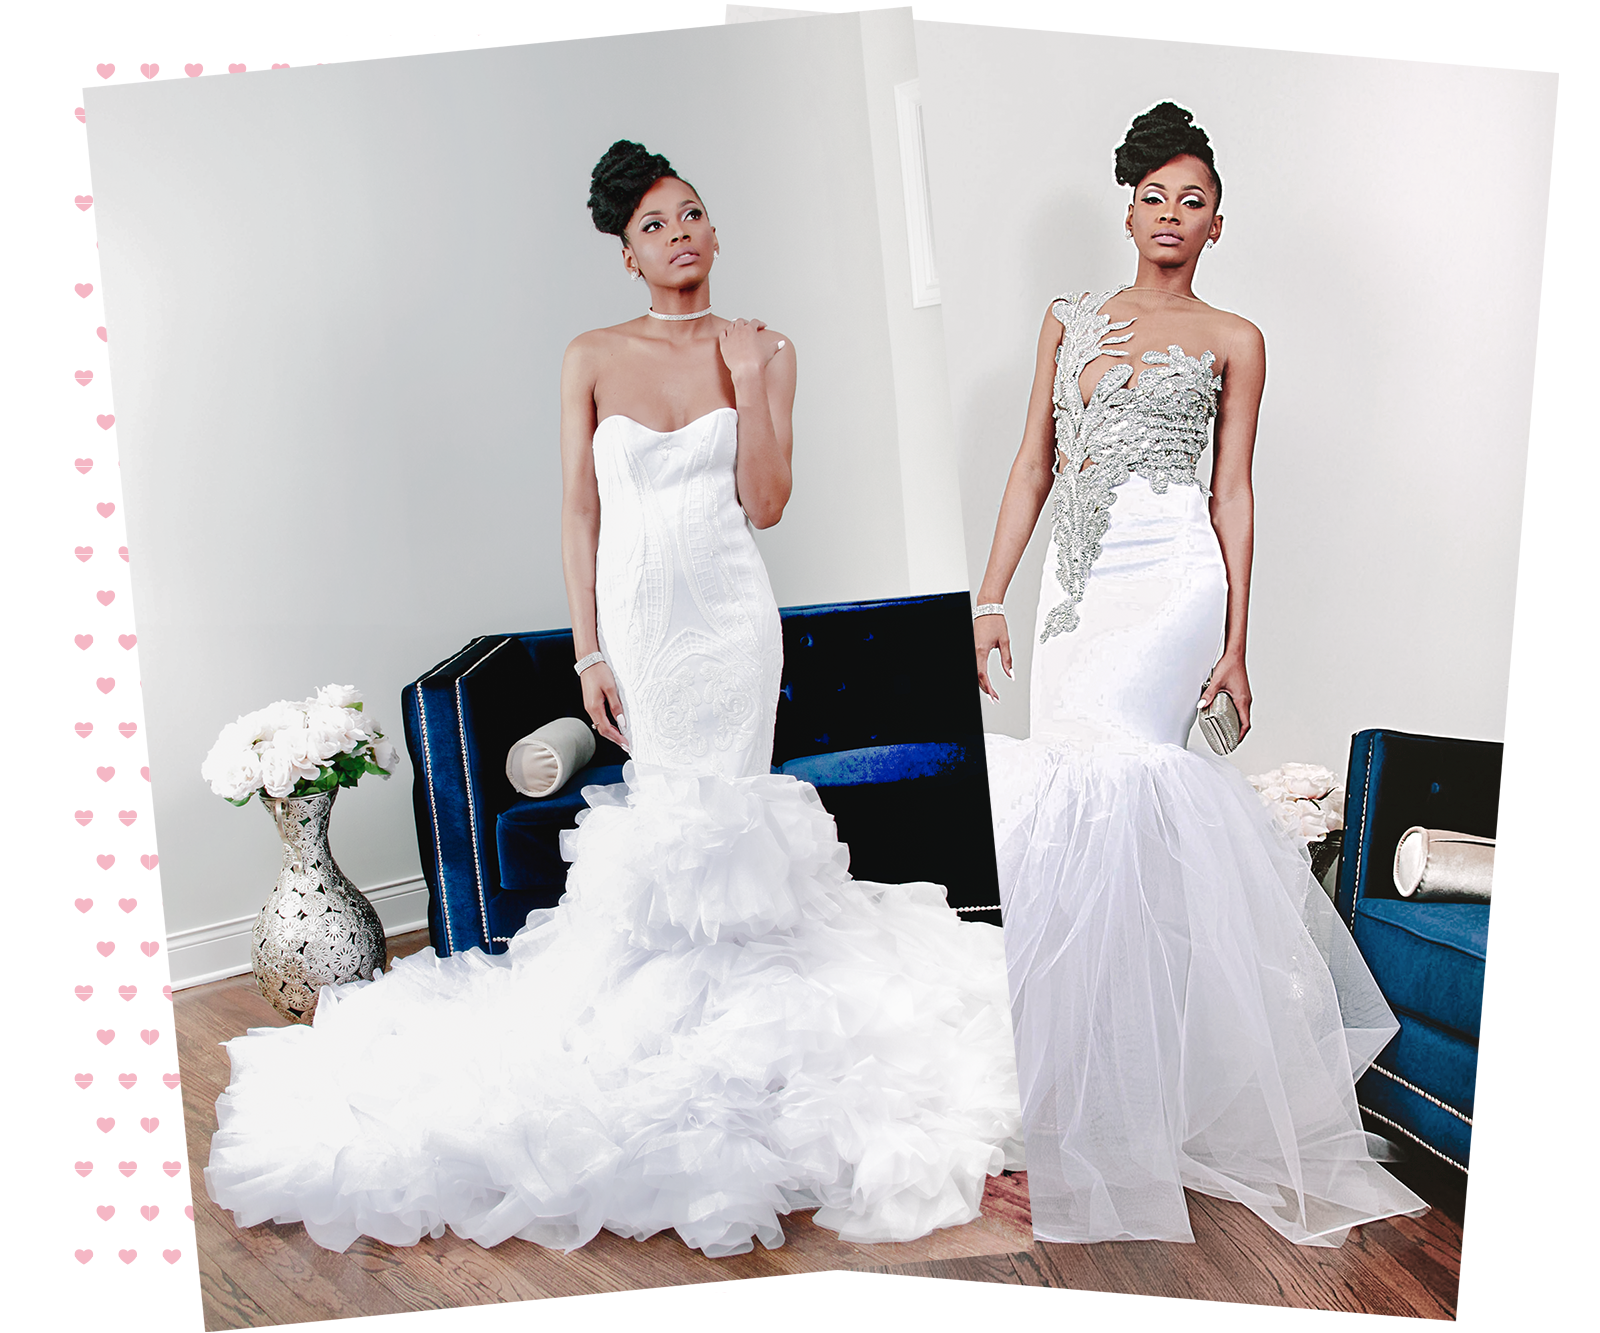 Project Runway Season 14 Contestant, Laurie Underwood goes Bridal - Traditional Pr | Media Relations